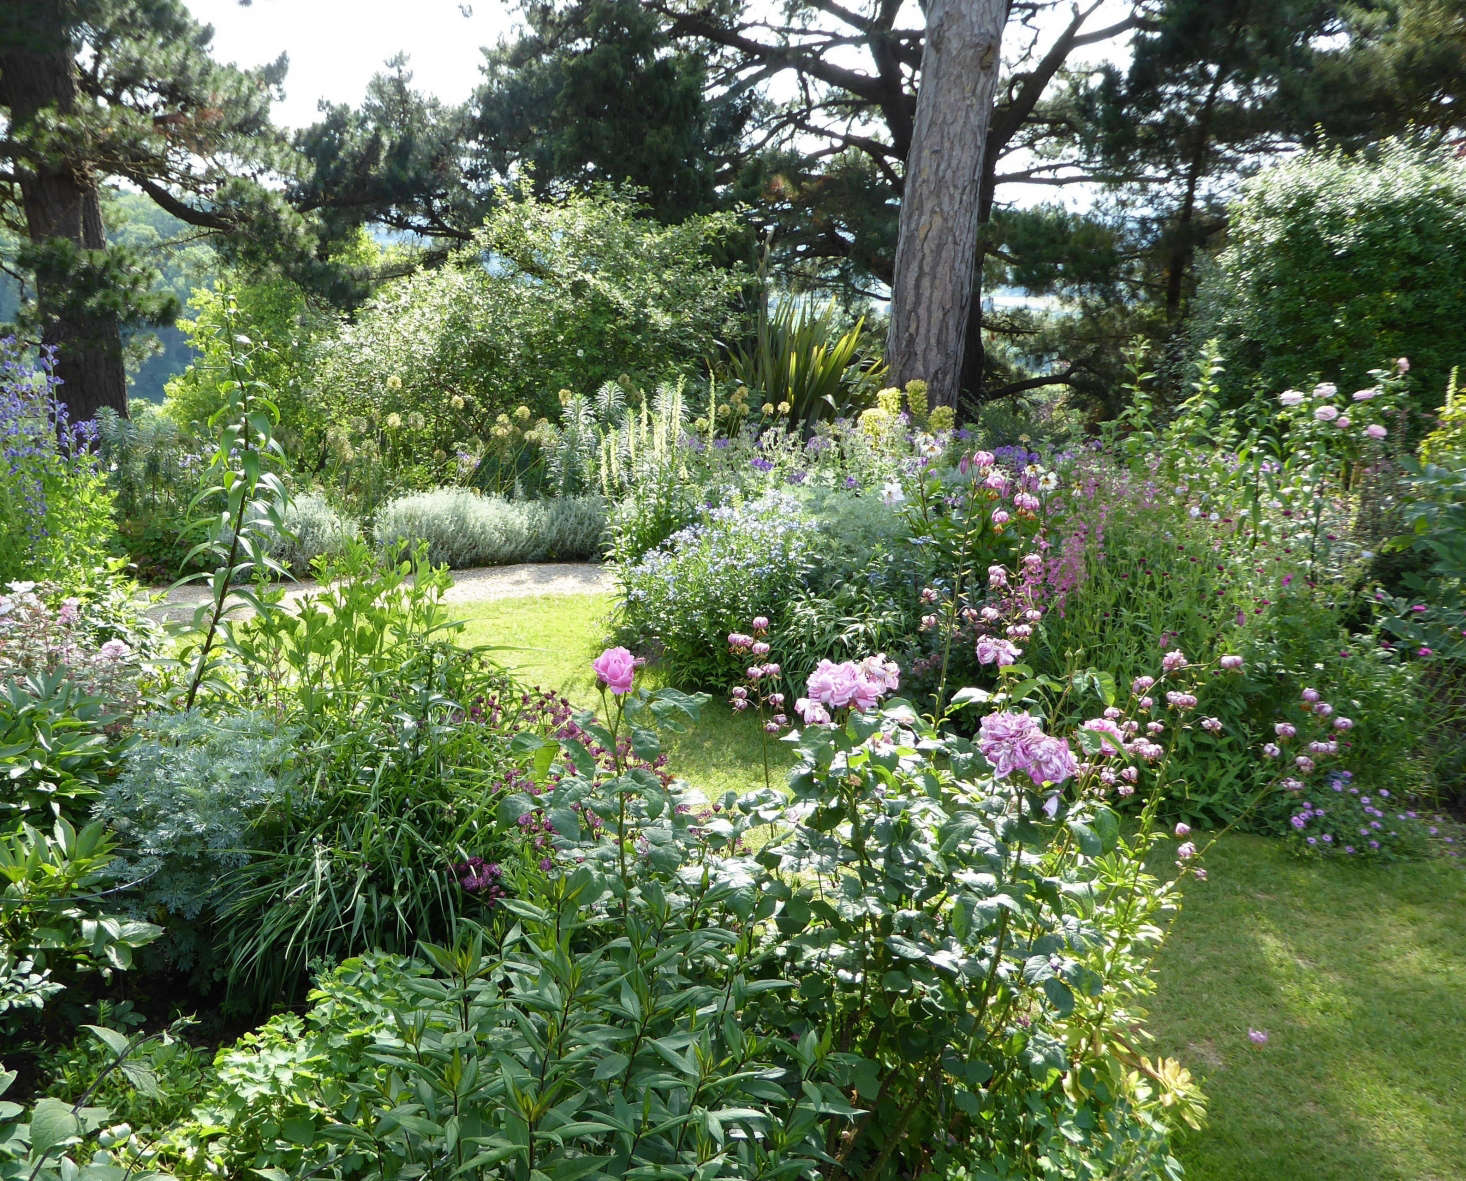 Perennial borders at Kiftsgate Court; photograph by Clare Coulson. For more, see 10 Ideas to Steal from the Romantic Gardens at Kiftsgate Court.